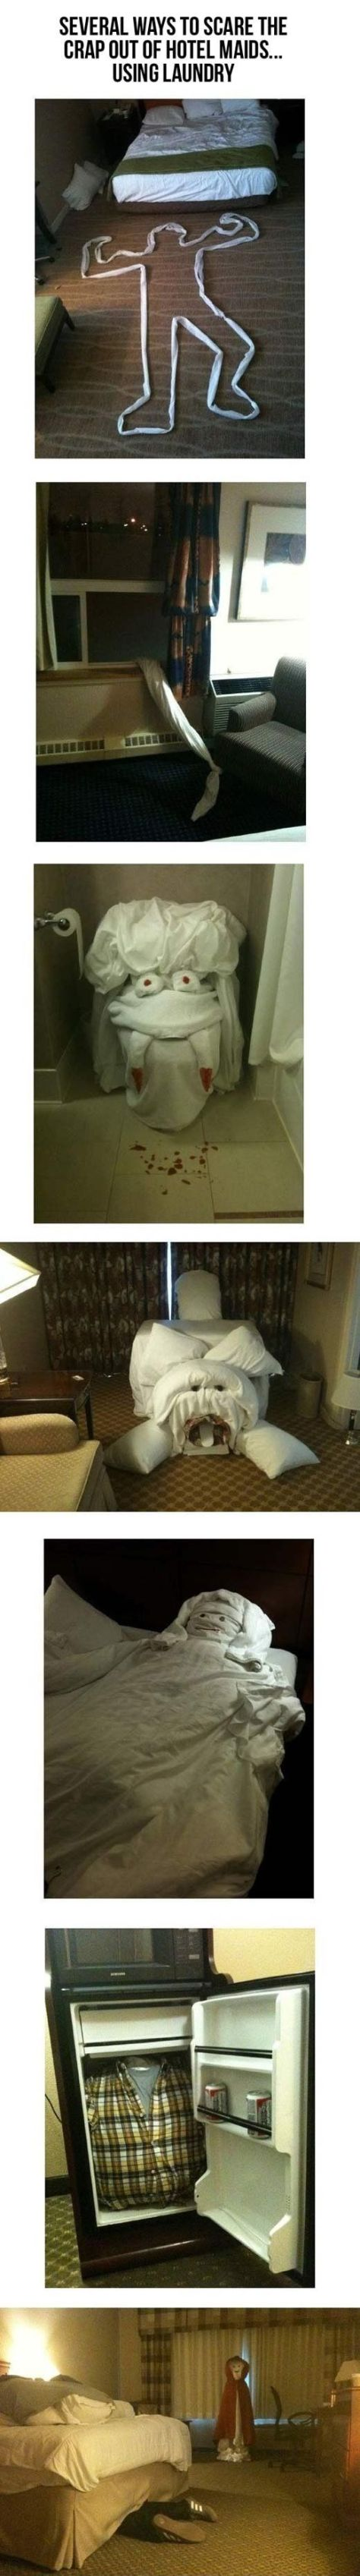 How To Scare The Crap Of Hotel Maids (Compilation)